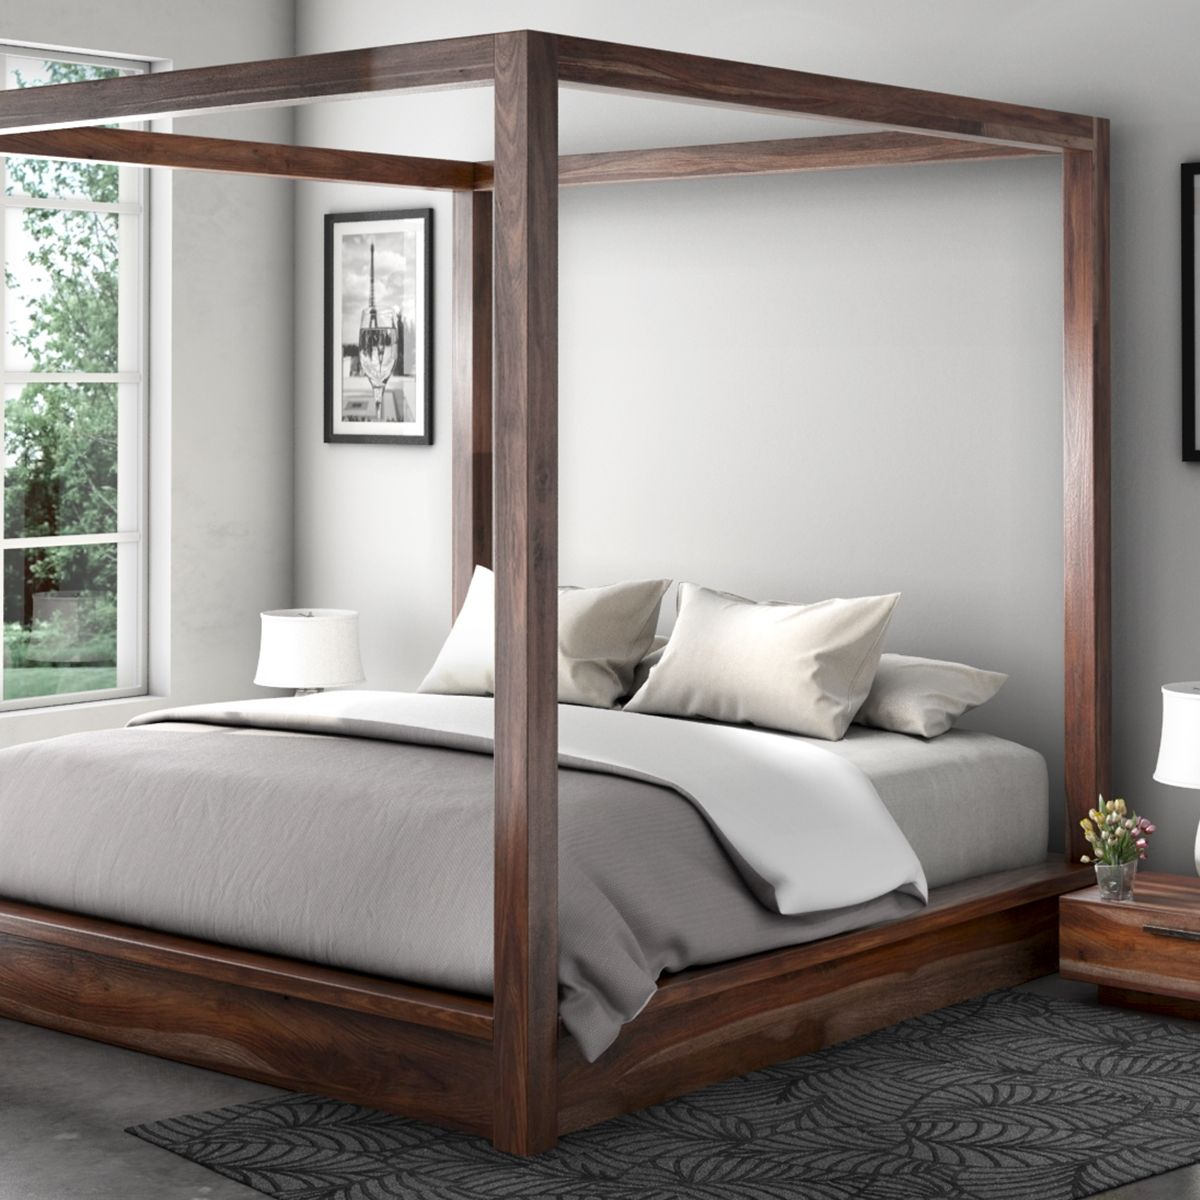 Productimage Solid Wood Platform Bed Canopy Bed Frame Wood Platform Bed Frame